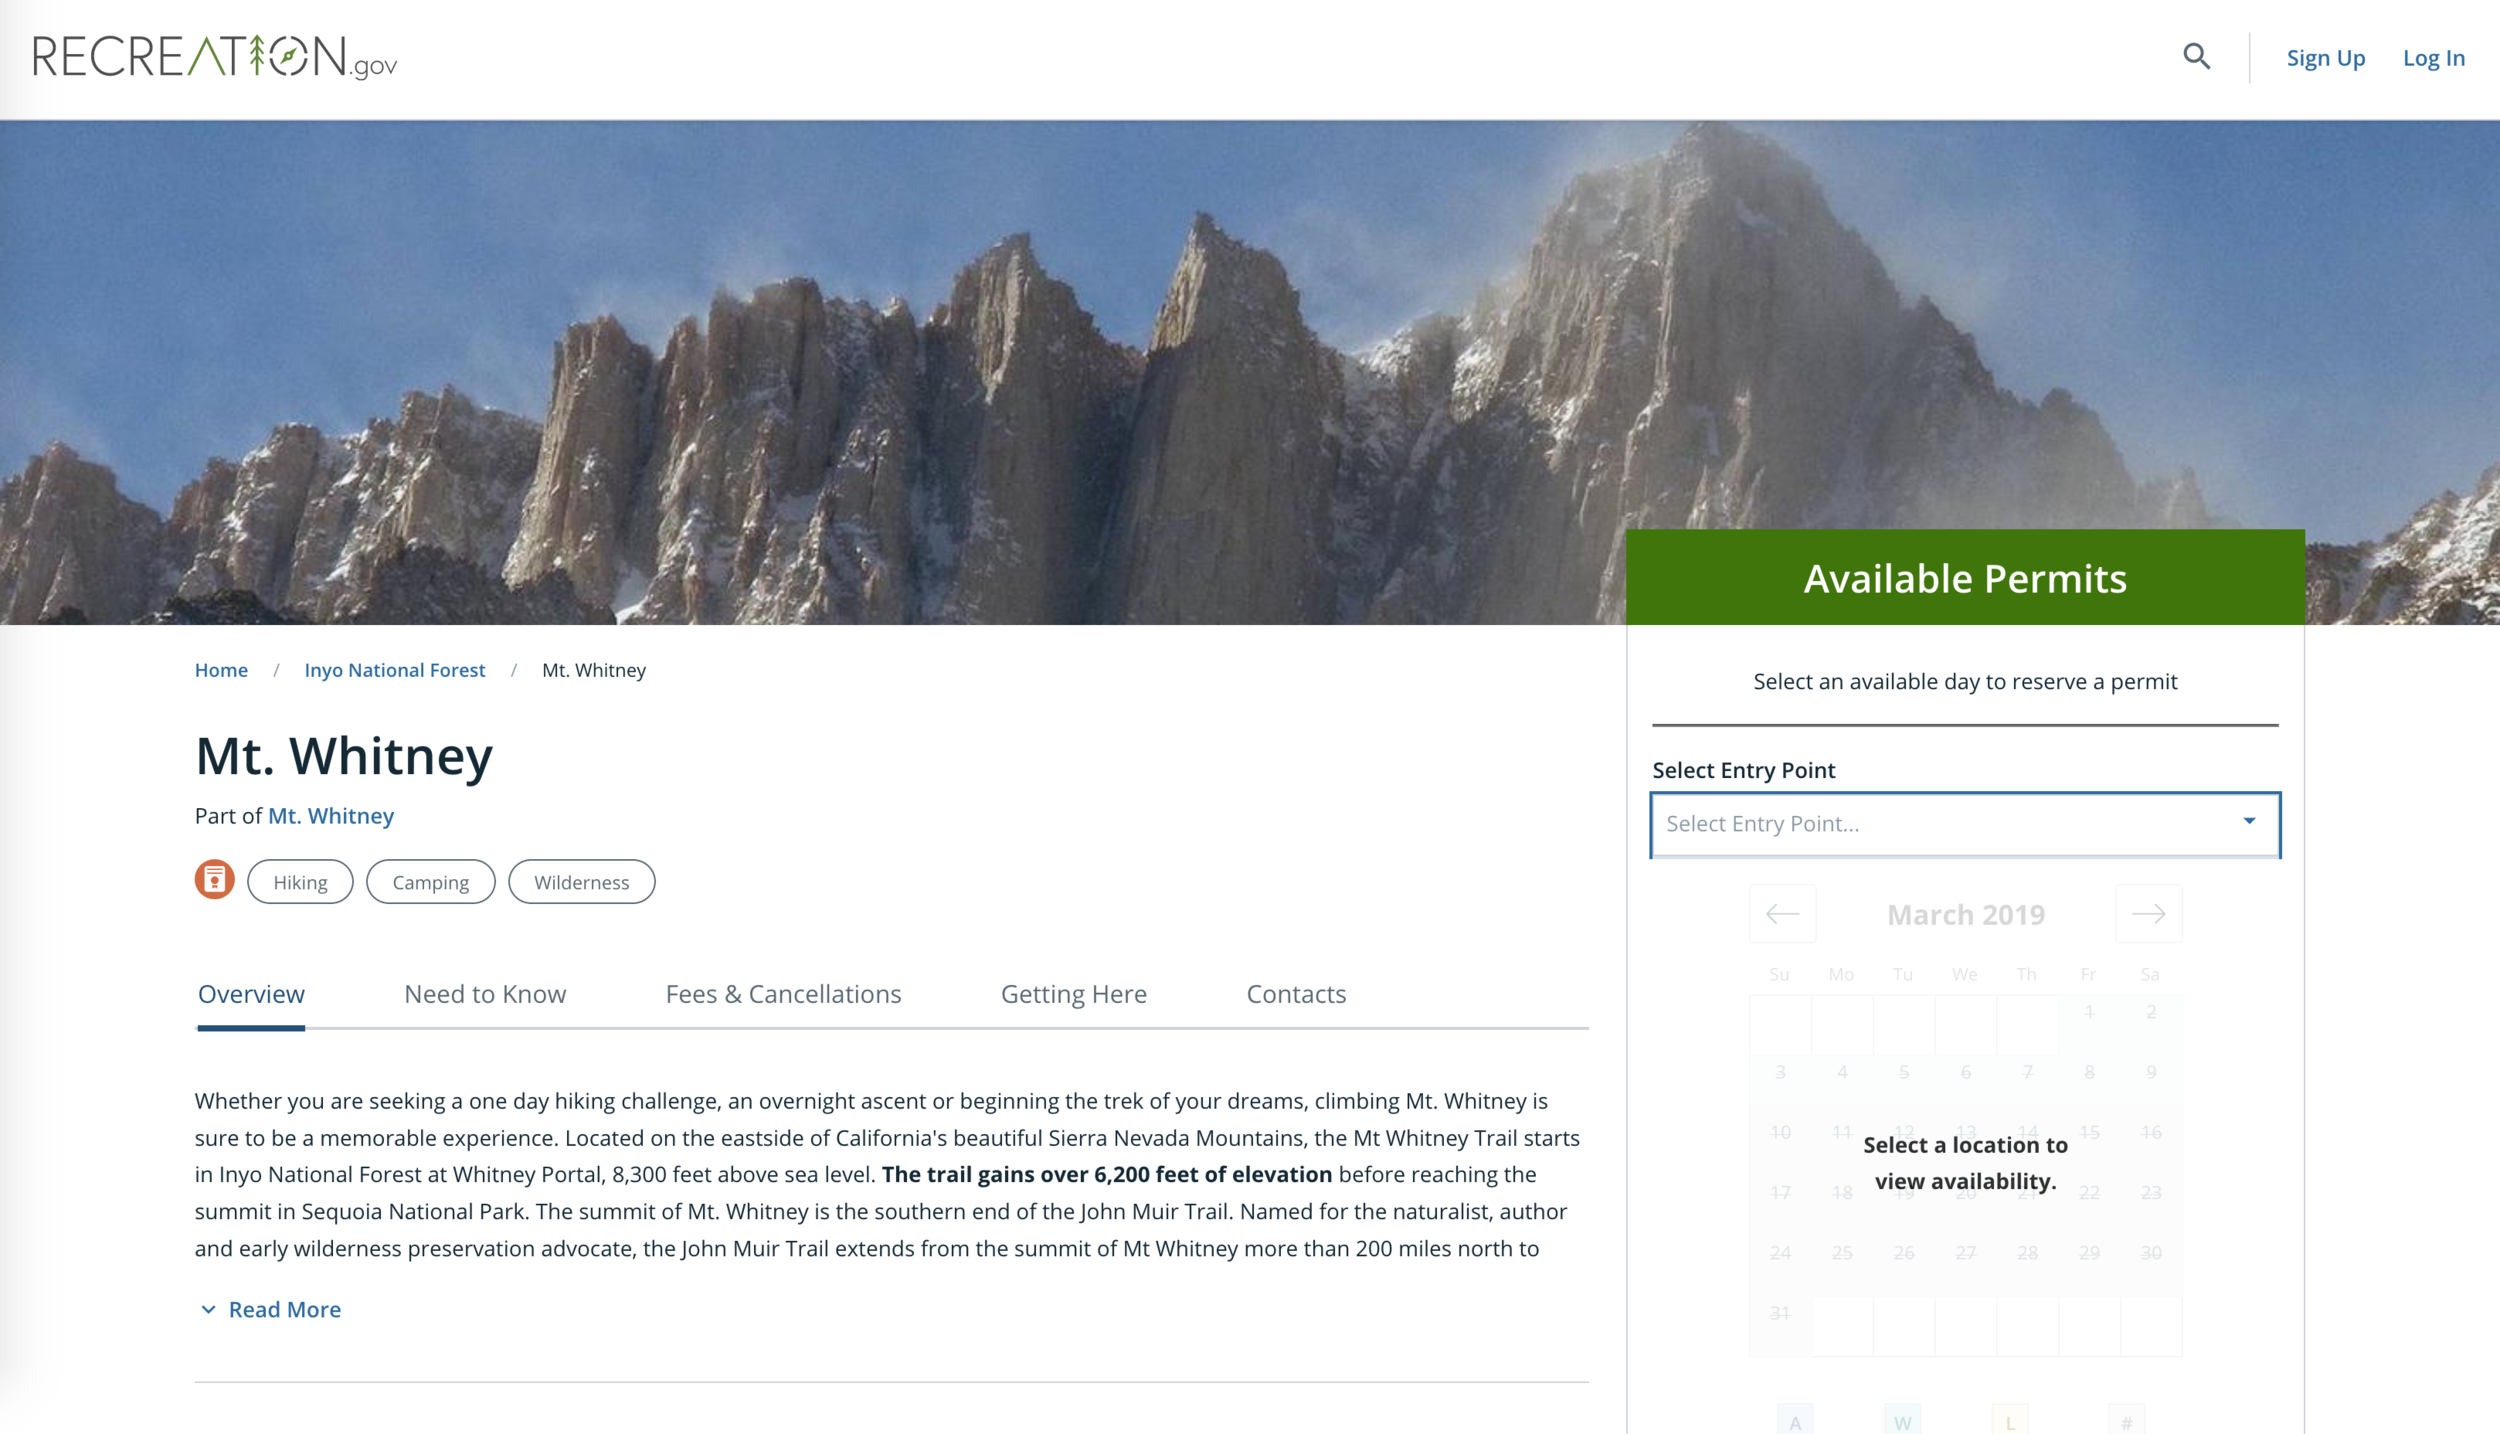 Recreation.gov website for reserving Mt. Whitney permits.